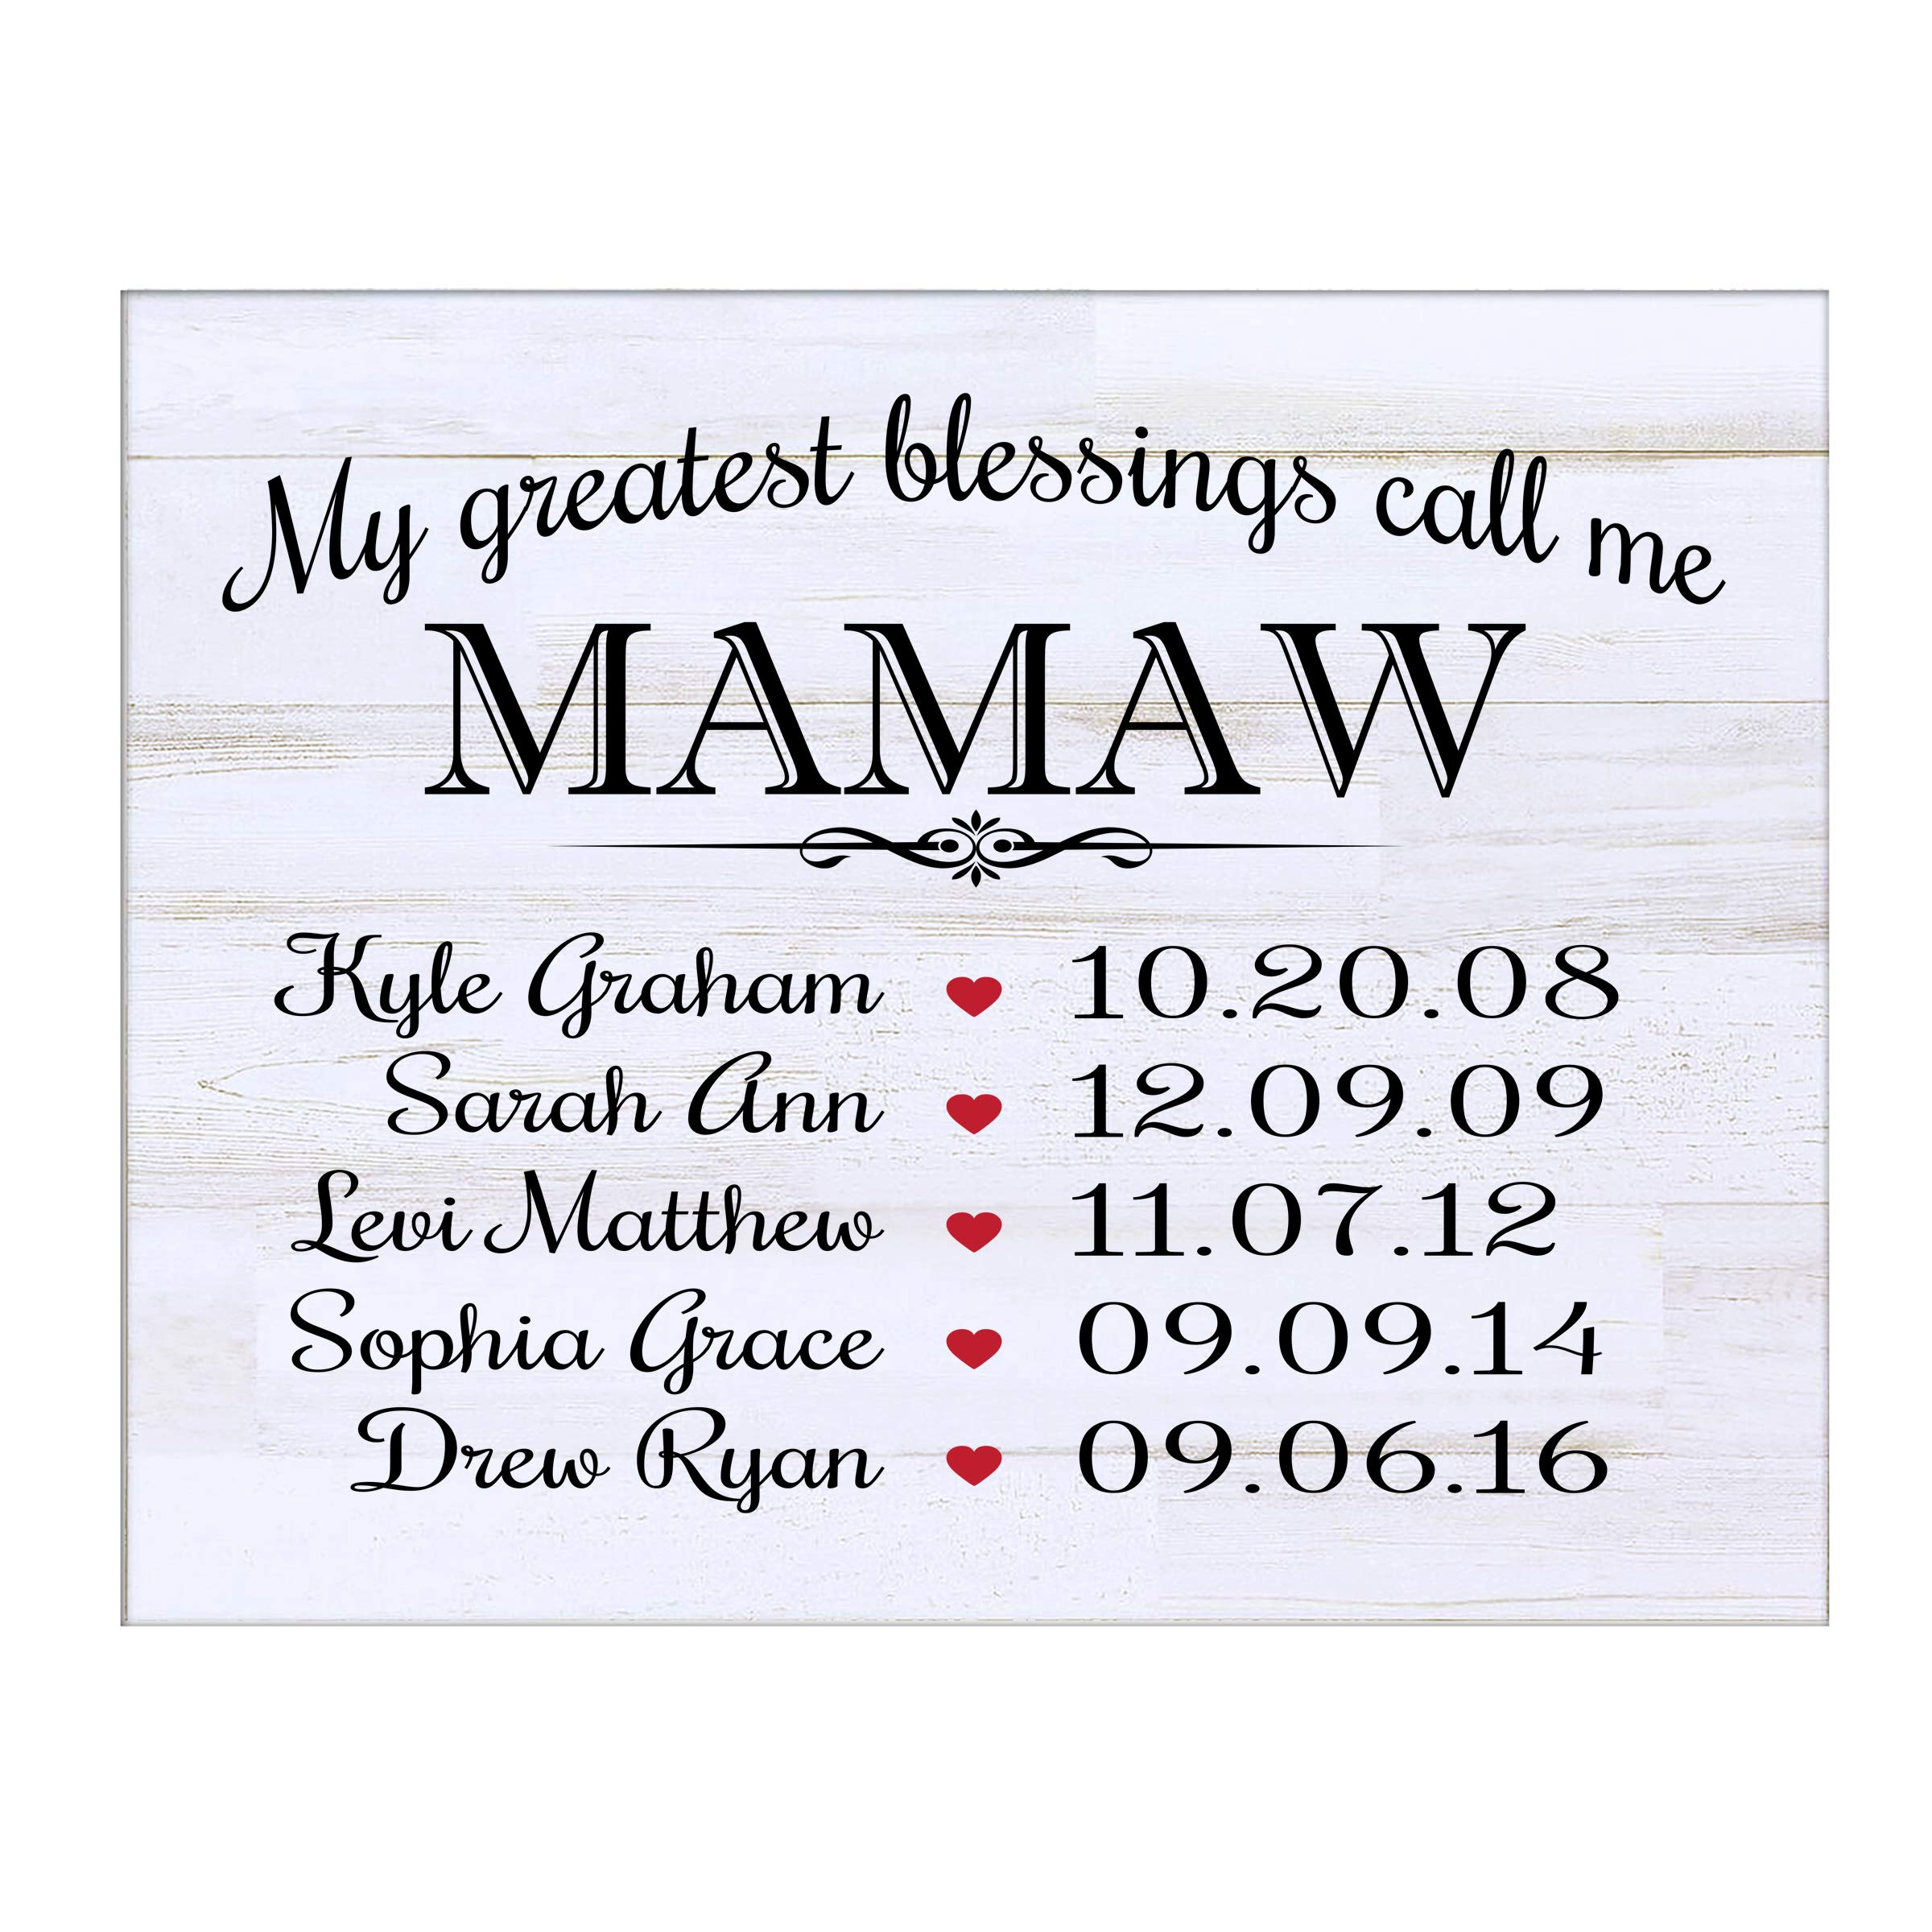 LifeSong Milestones Personalized Gifts for Mamaw Wall Plaque Sign with Children's Names Birth Dates to Remember My Greatest Blessings Call me Mamaw (White Distressed)